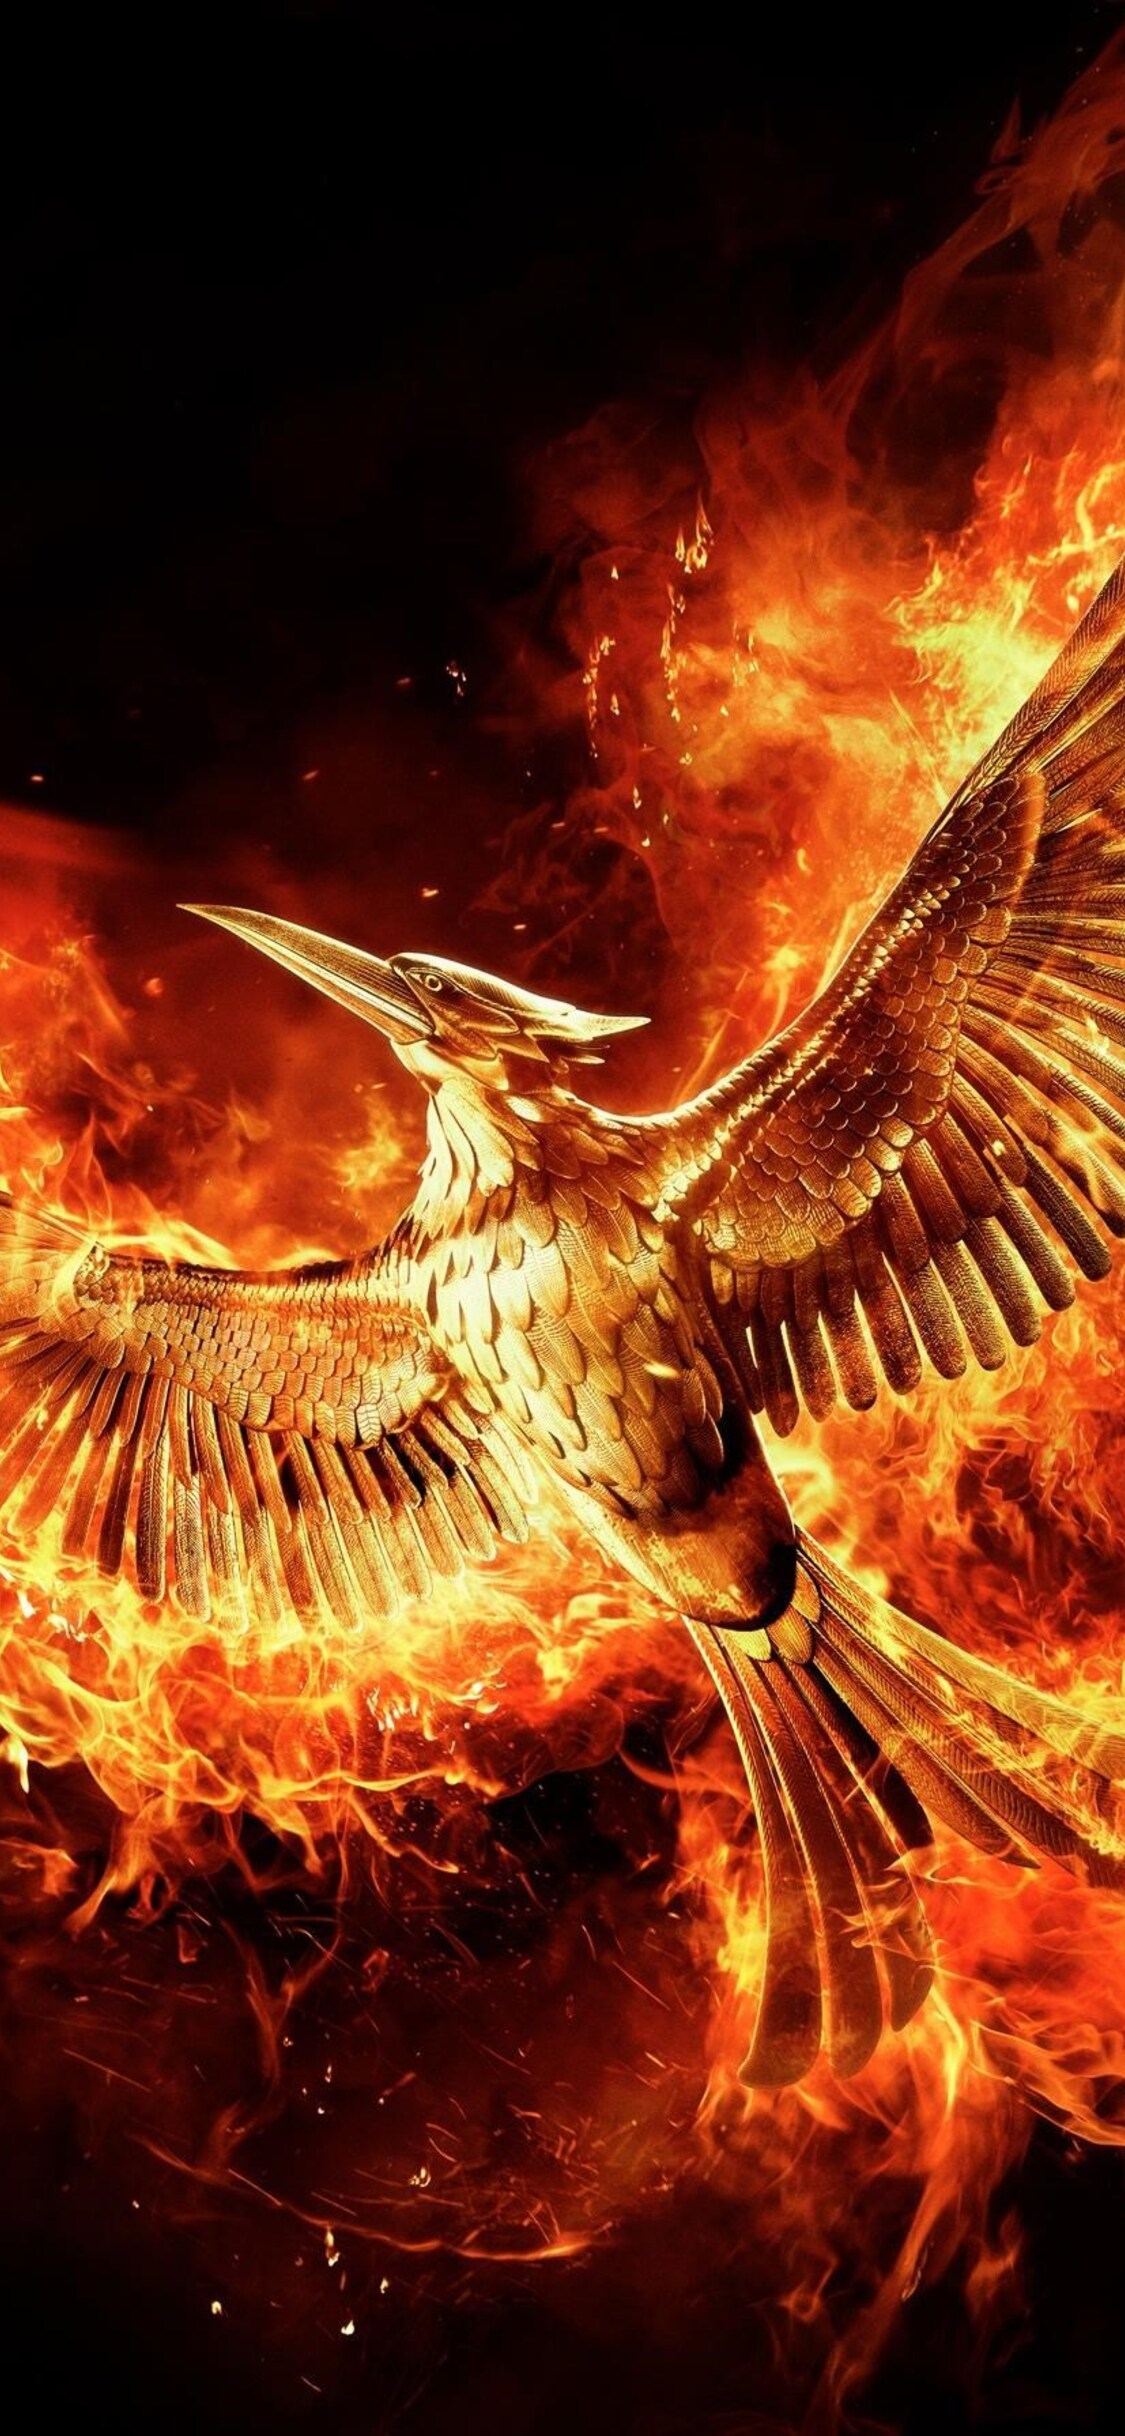 1125x2436 The Hunger Games Mockingjay Part 2 Movie Iphone Xs